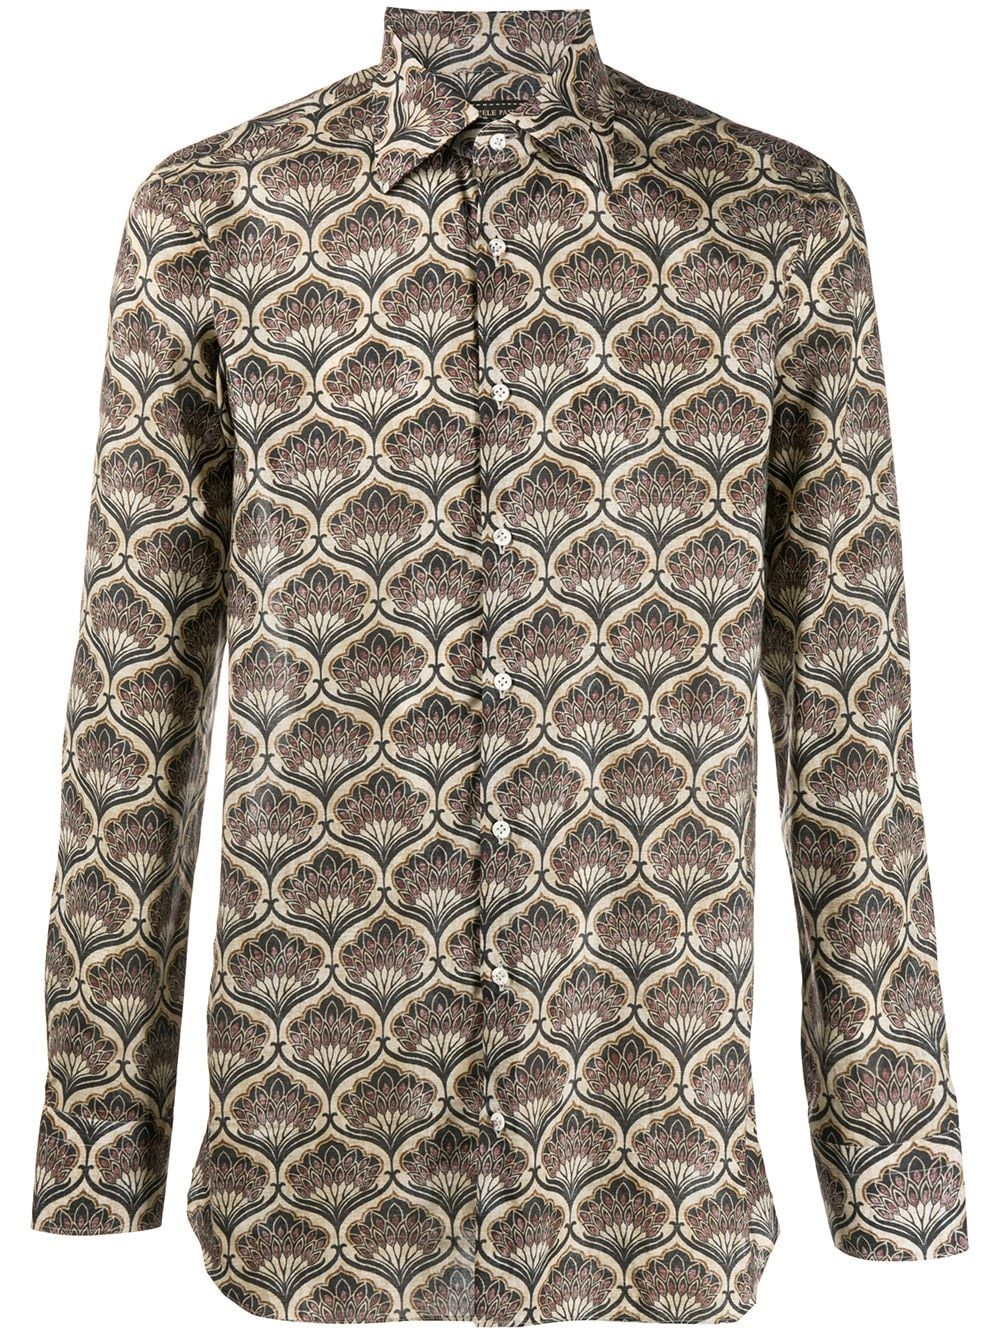 GABRIELE PASINI Geometric Long-Sleeve Shirt